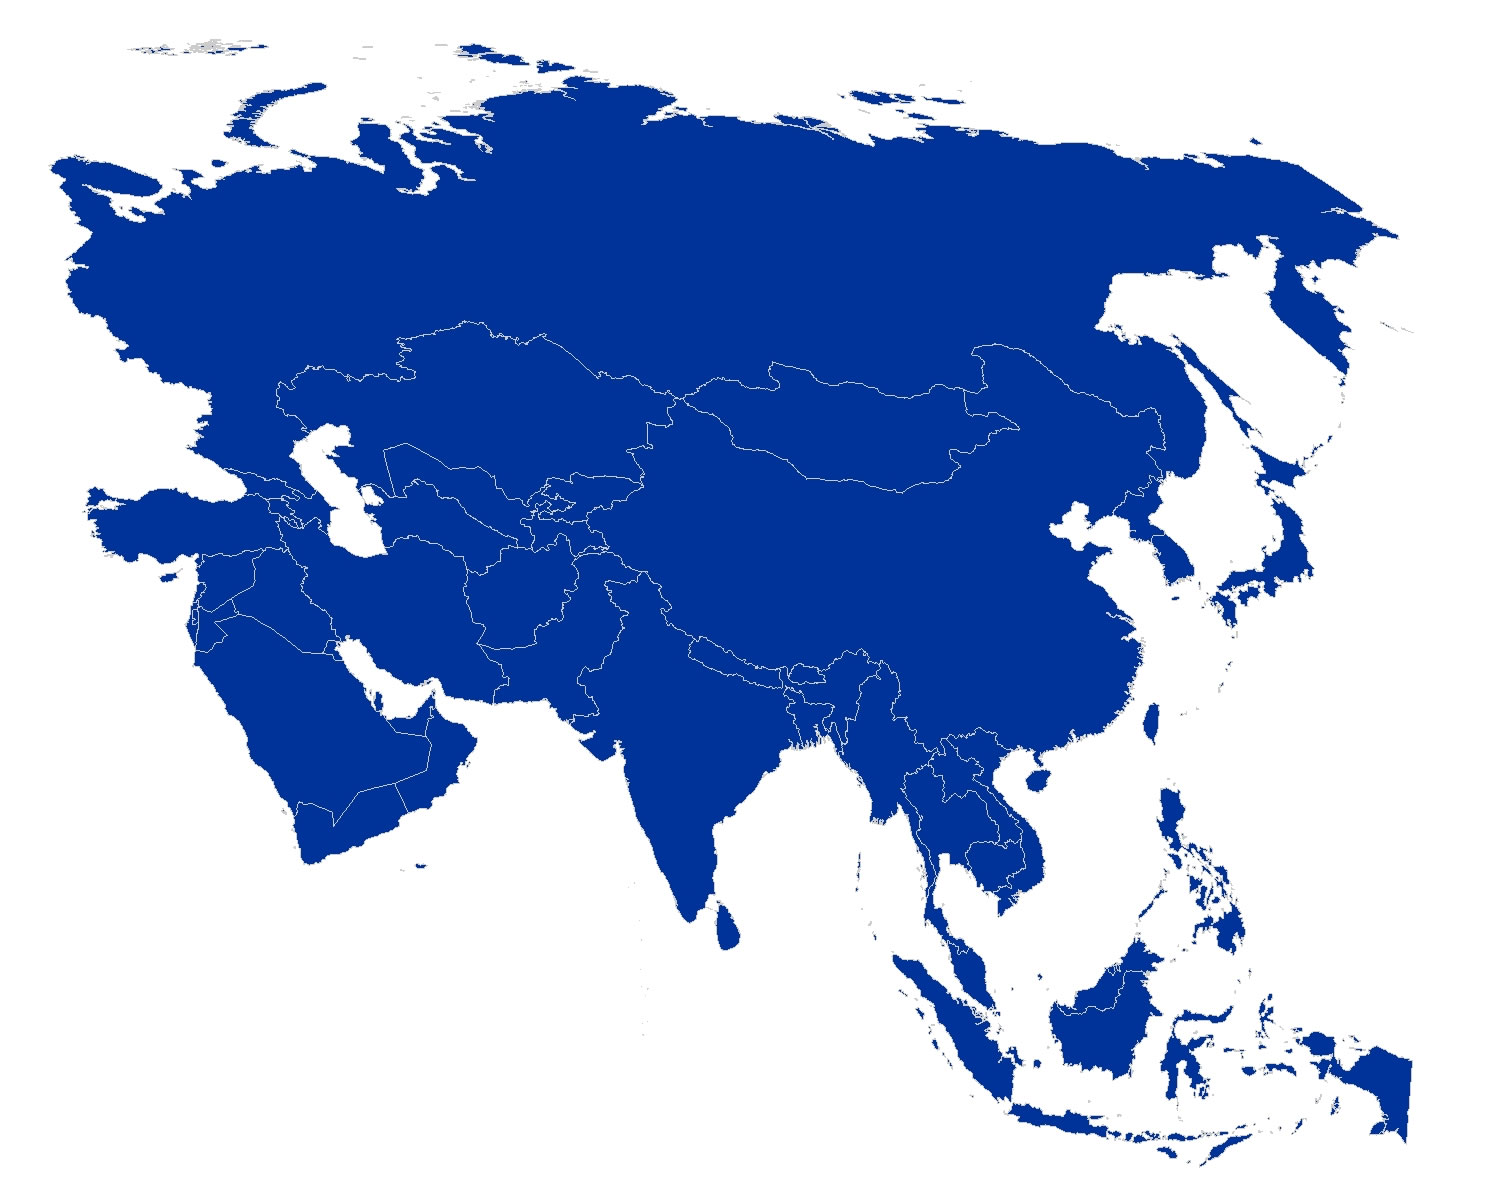 What are the continents called